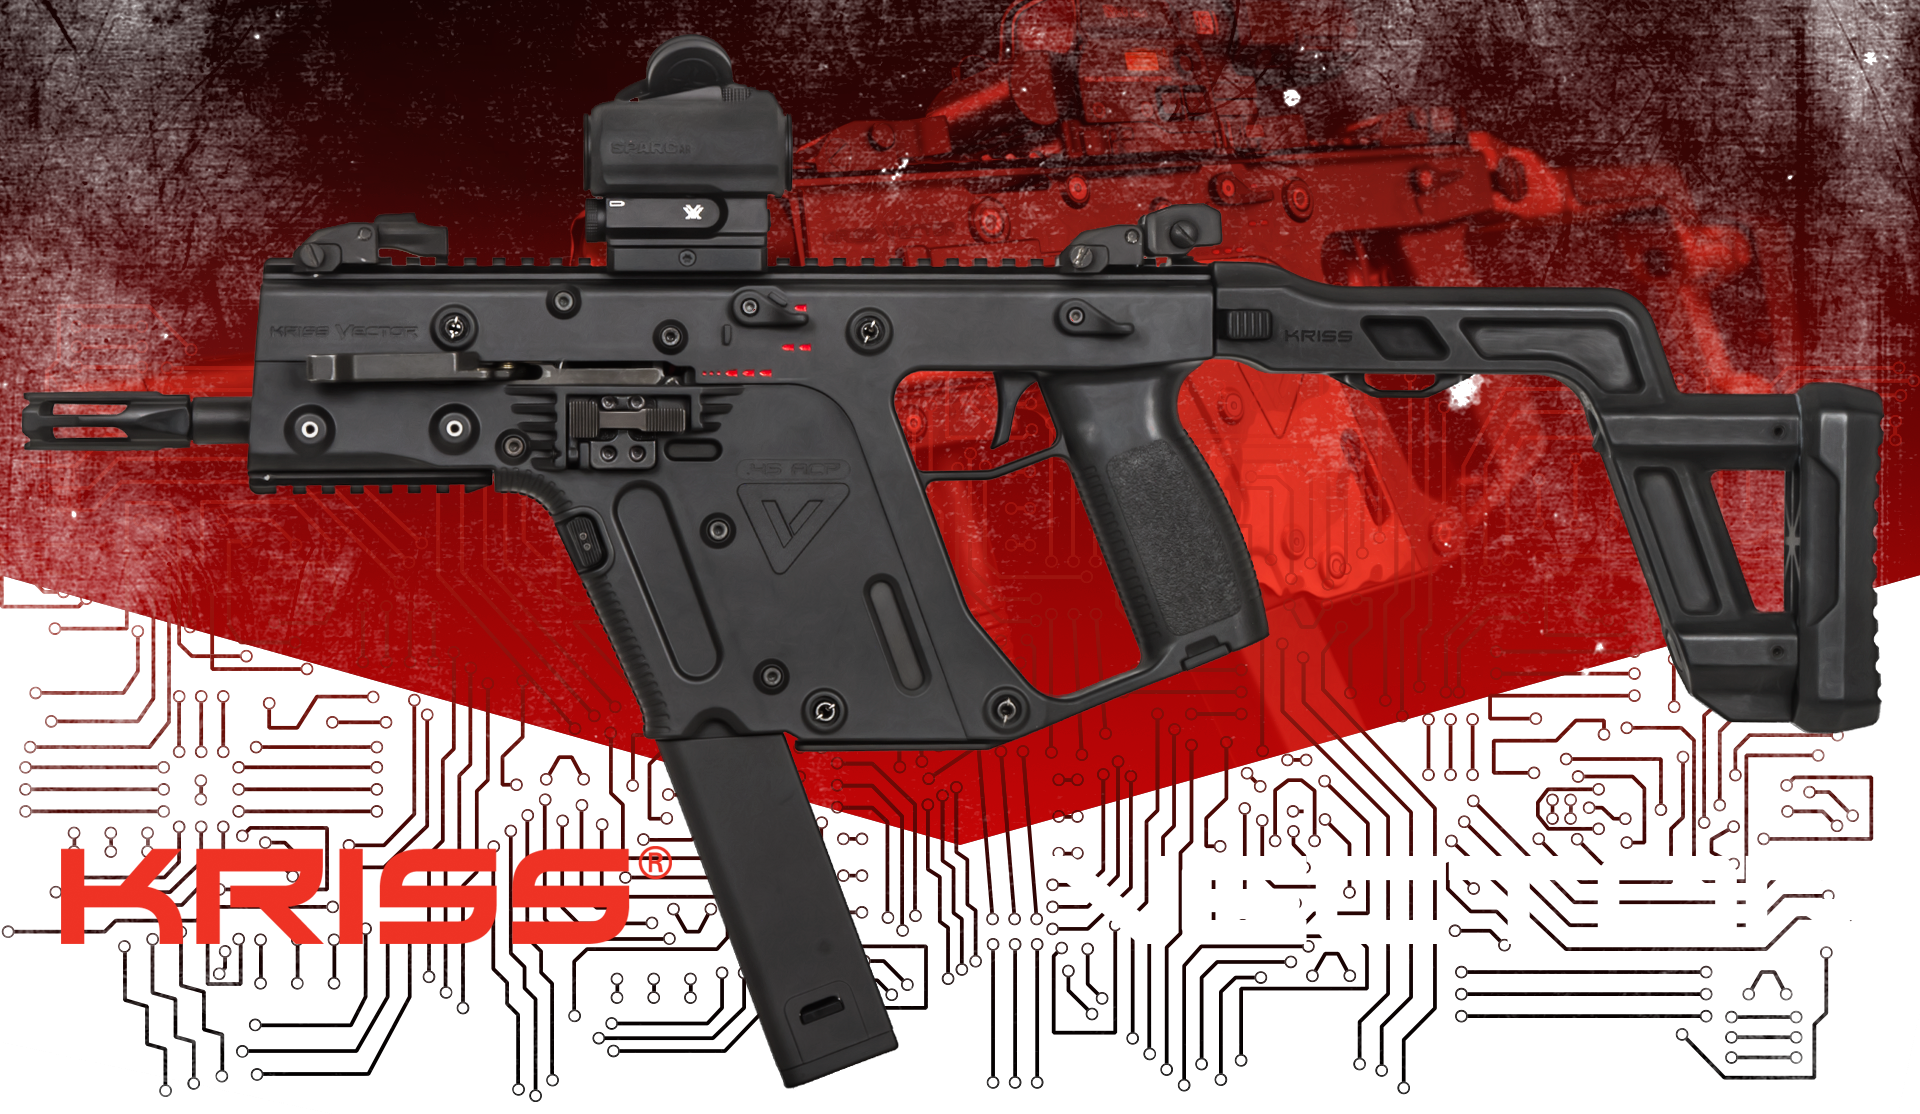 Aeg vector call duty. Krytac kriss smg airsoft